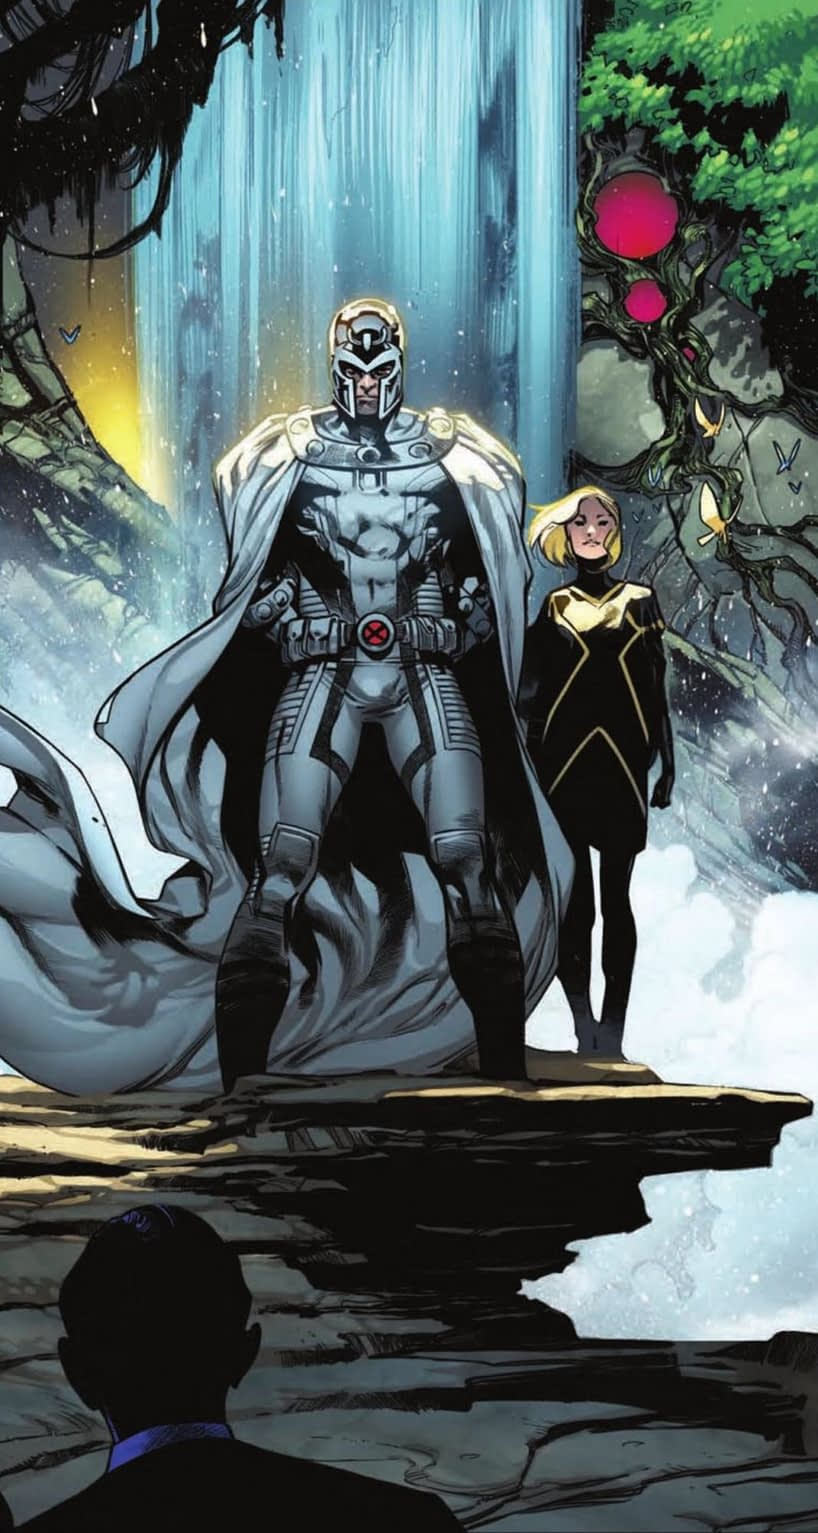 A Look Inside House Of X and Powers Of X